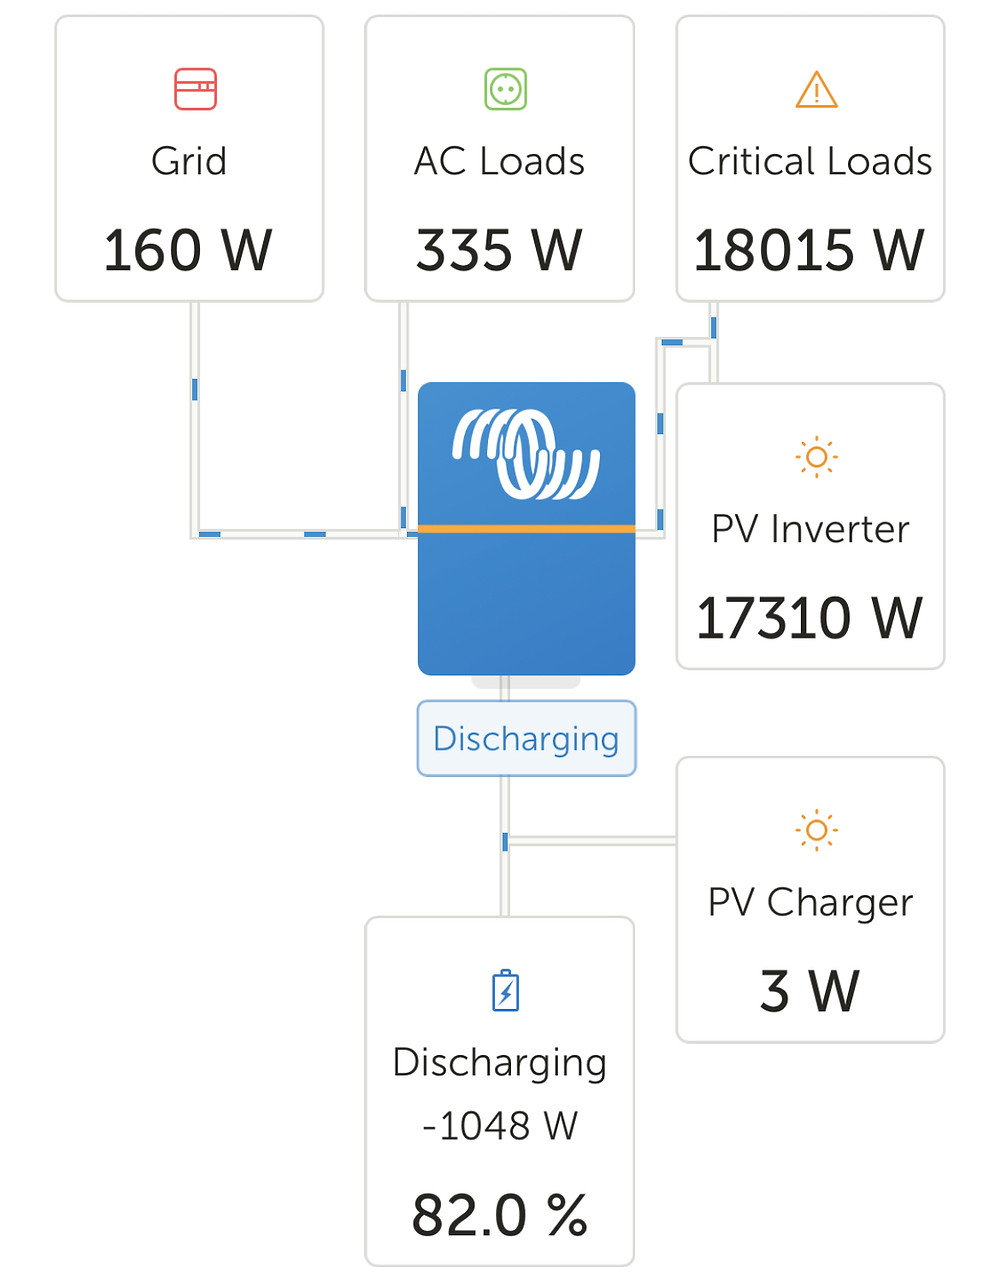 Graphical representation of Irrigation System using 18kWh of power, being powered mainly by a PV inverter generating 17.3kWh